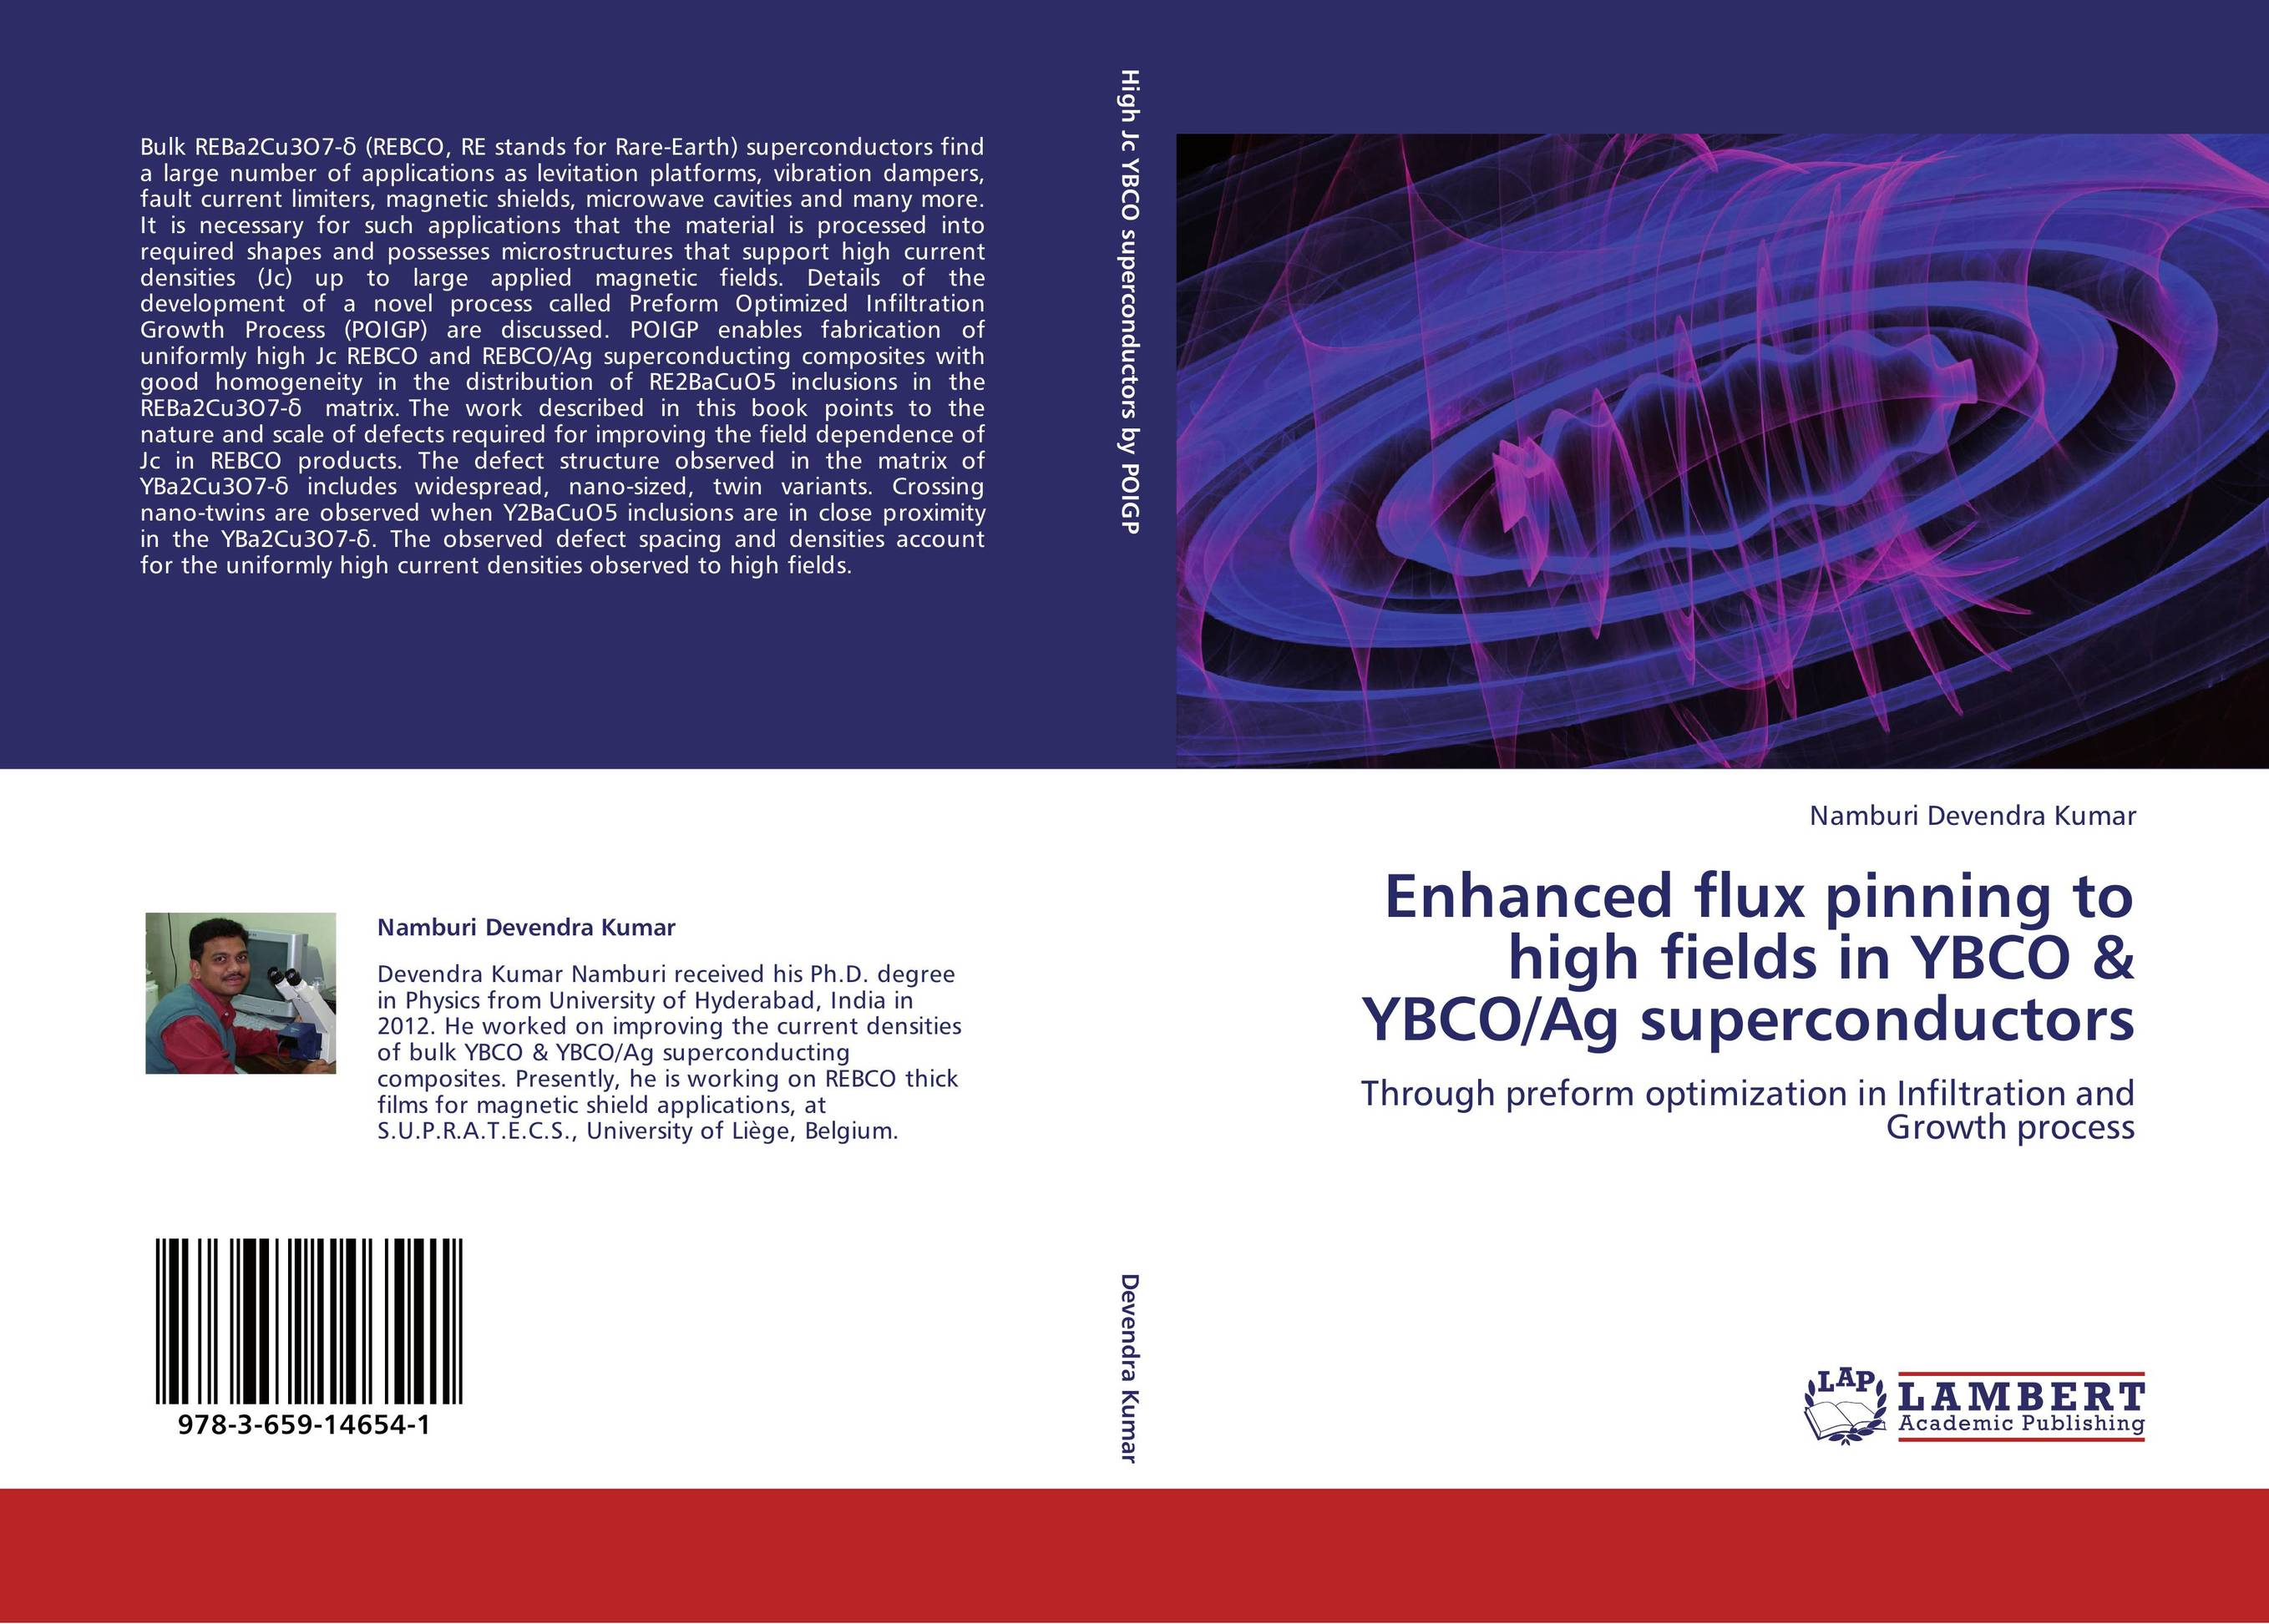 ybco thesis Superconductivity is a phenomenon of exactly zero electrical resistance and expulsion of magnetic flux fields occurring in certain materials, called superconductors, when cooled below a characteristic critical temperature.